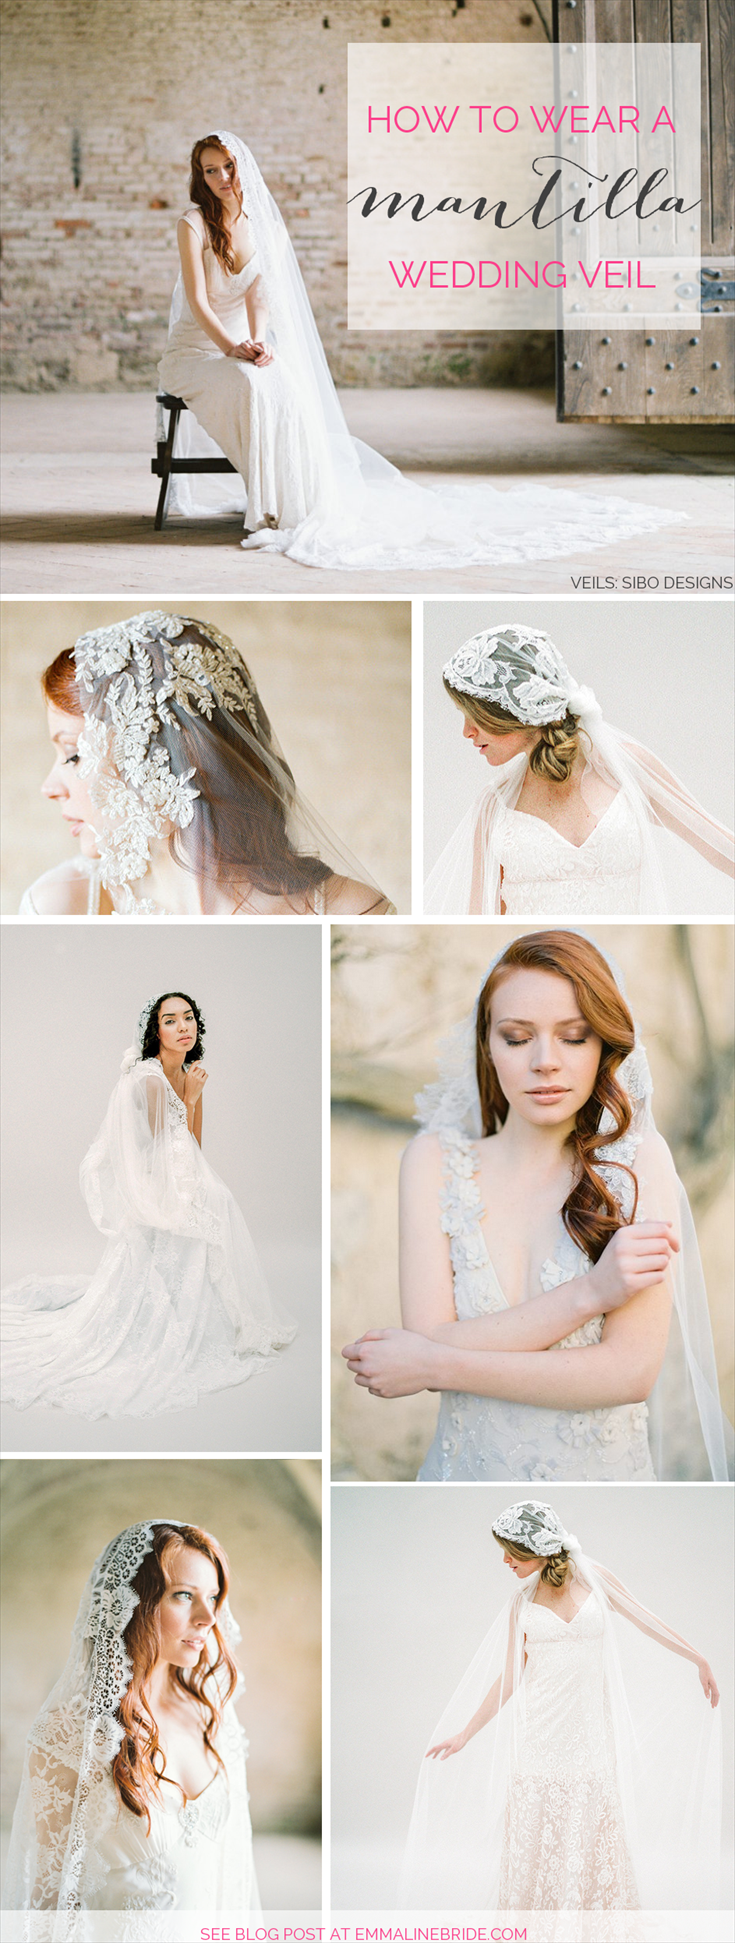 How to wear a mantilla wedding veil